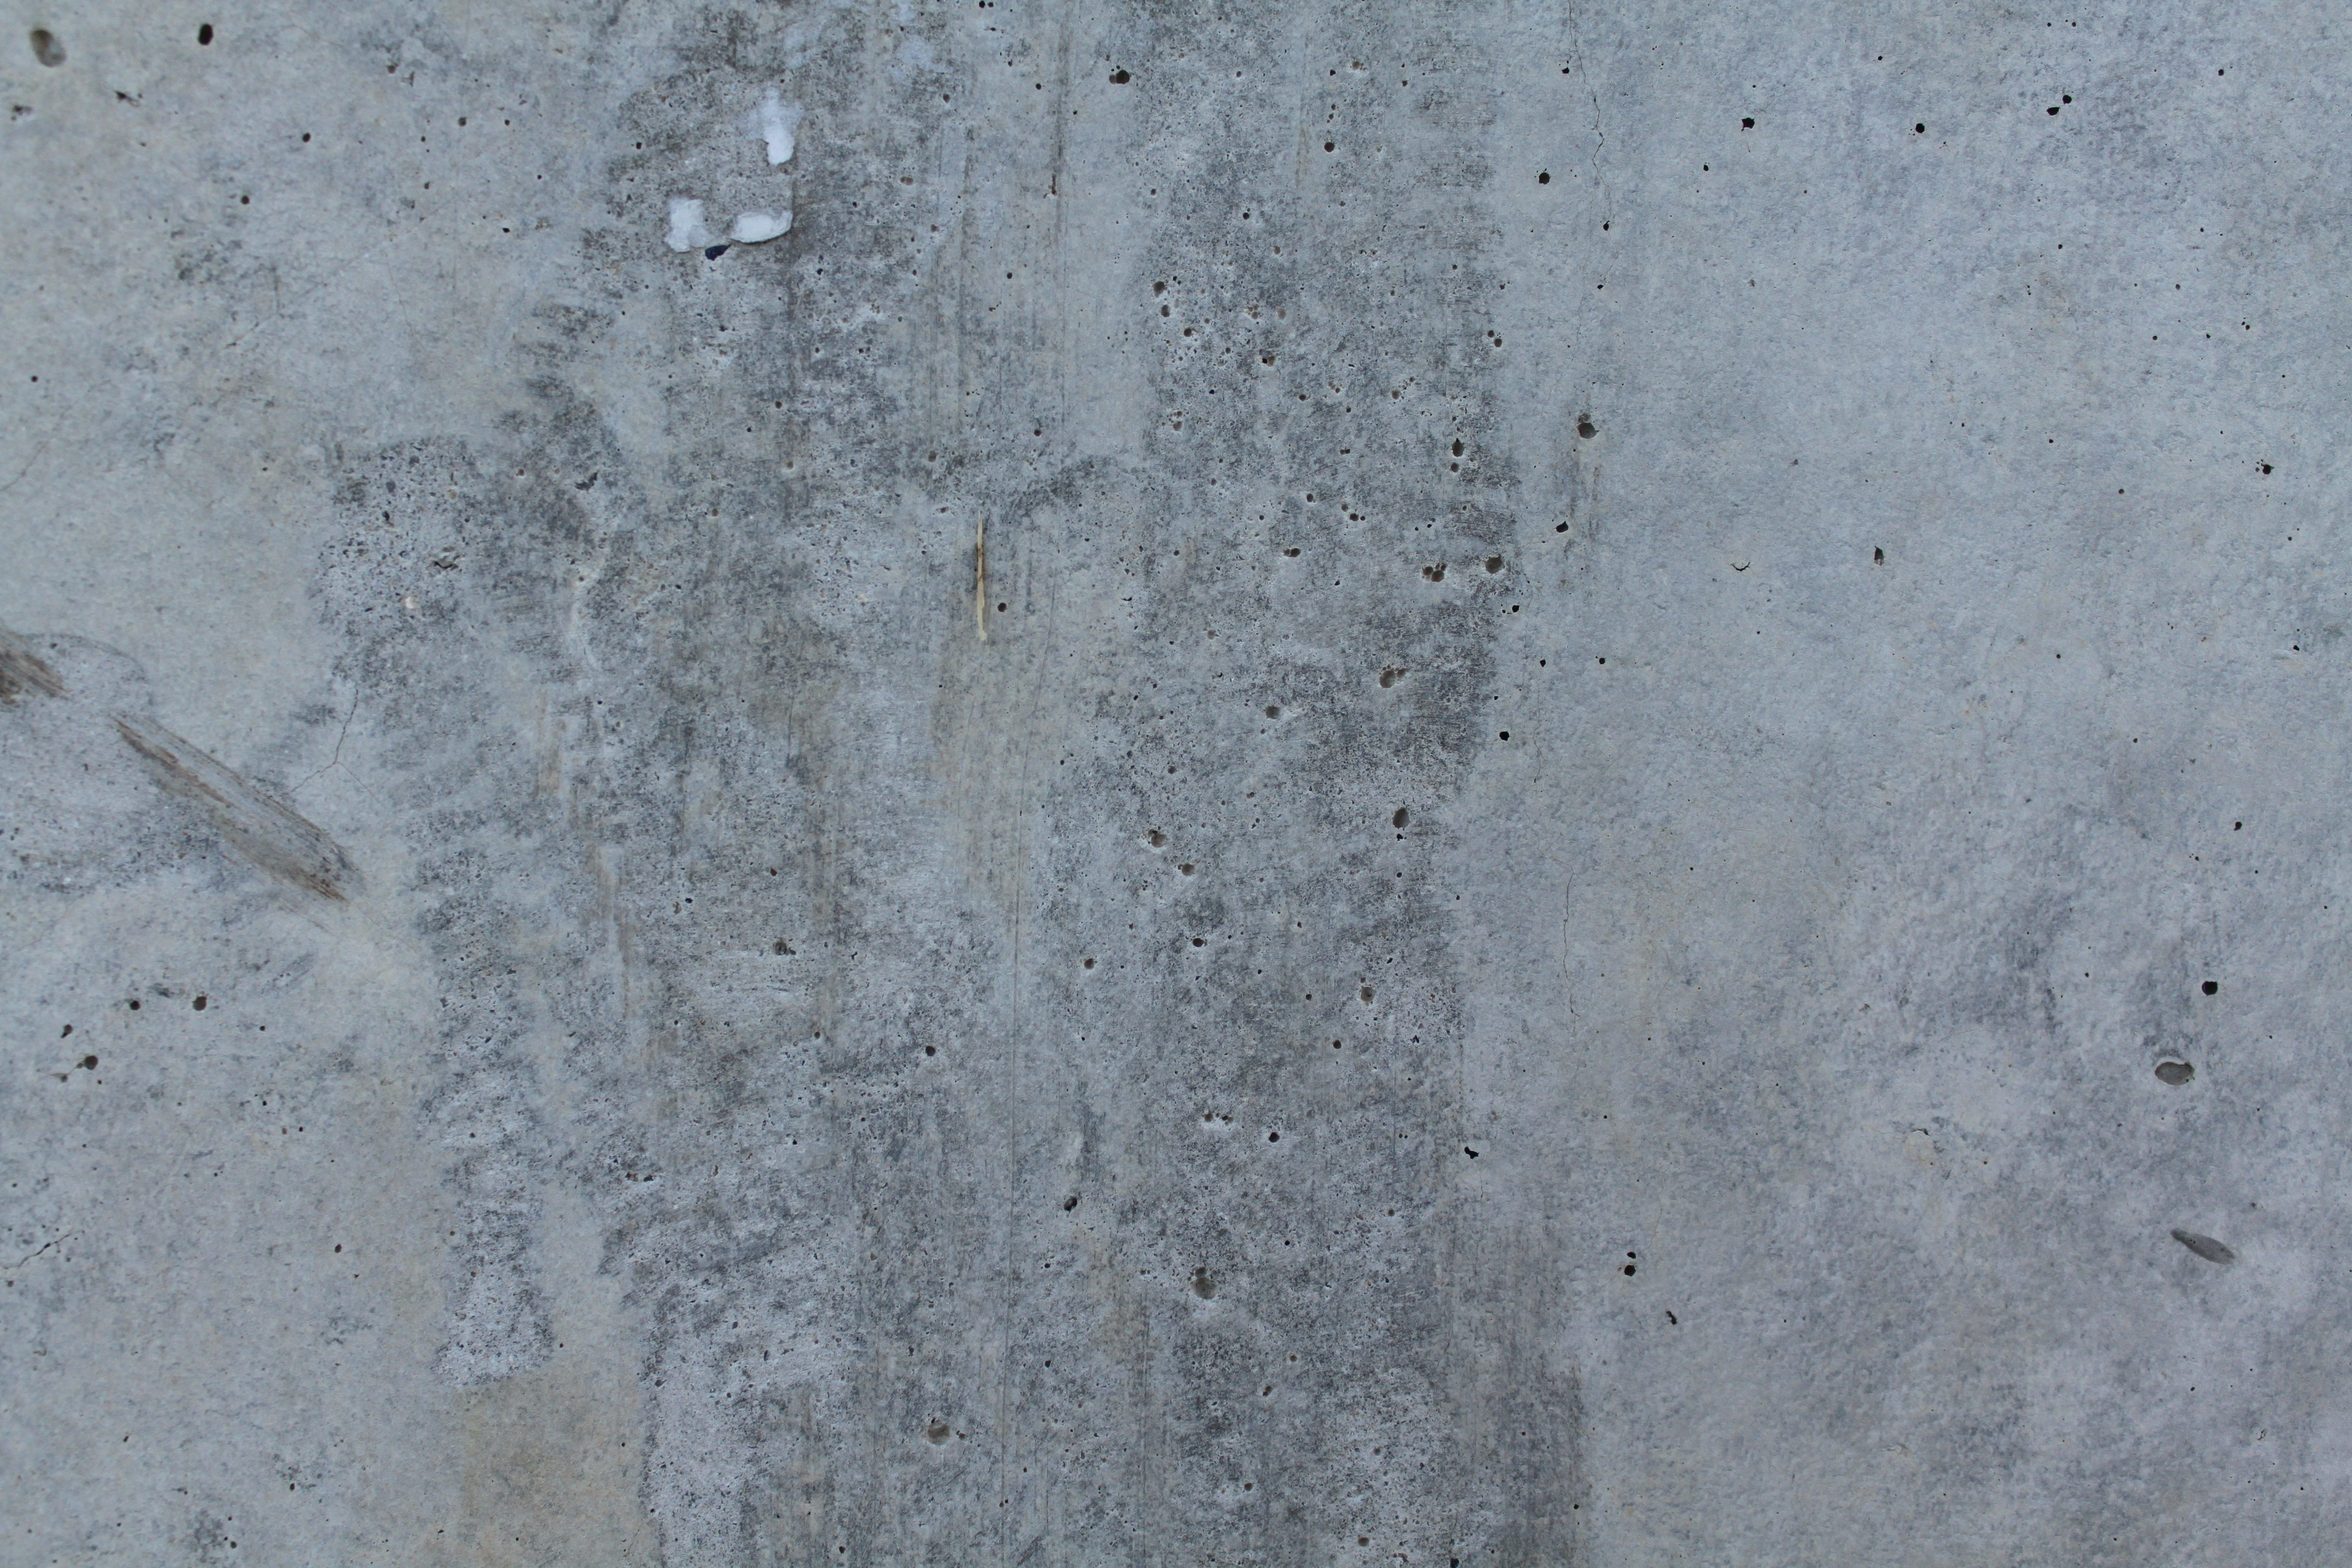 Texture Walls Design 7 Free Hq Concrete Wall Textures Downloadable